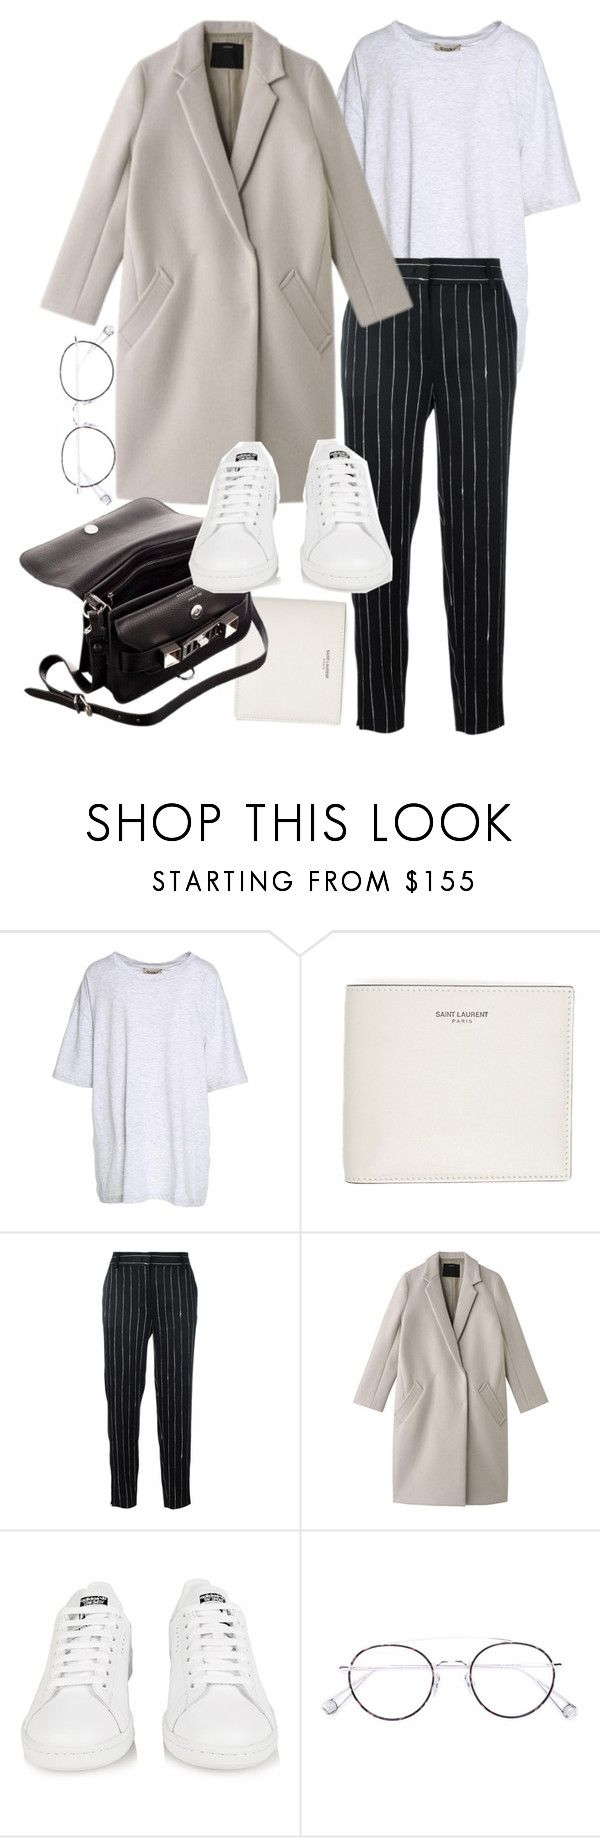 """Untitled #22310"" by florencia95 ❤ liked on Polyvore featuring Yeezy by Kanye West, Yves Saint Laurent, DKNY, Proenza Schouler, adidas and Ahlem"